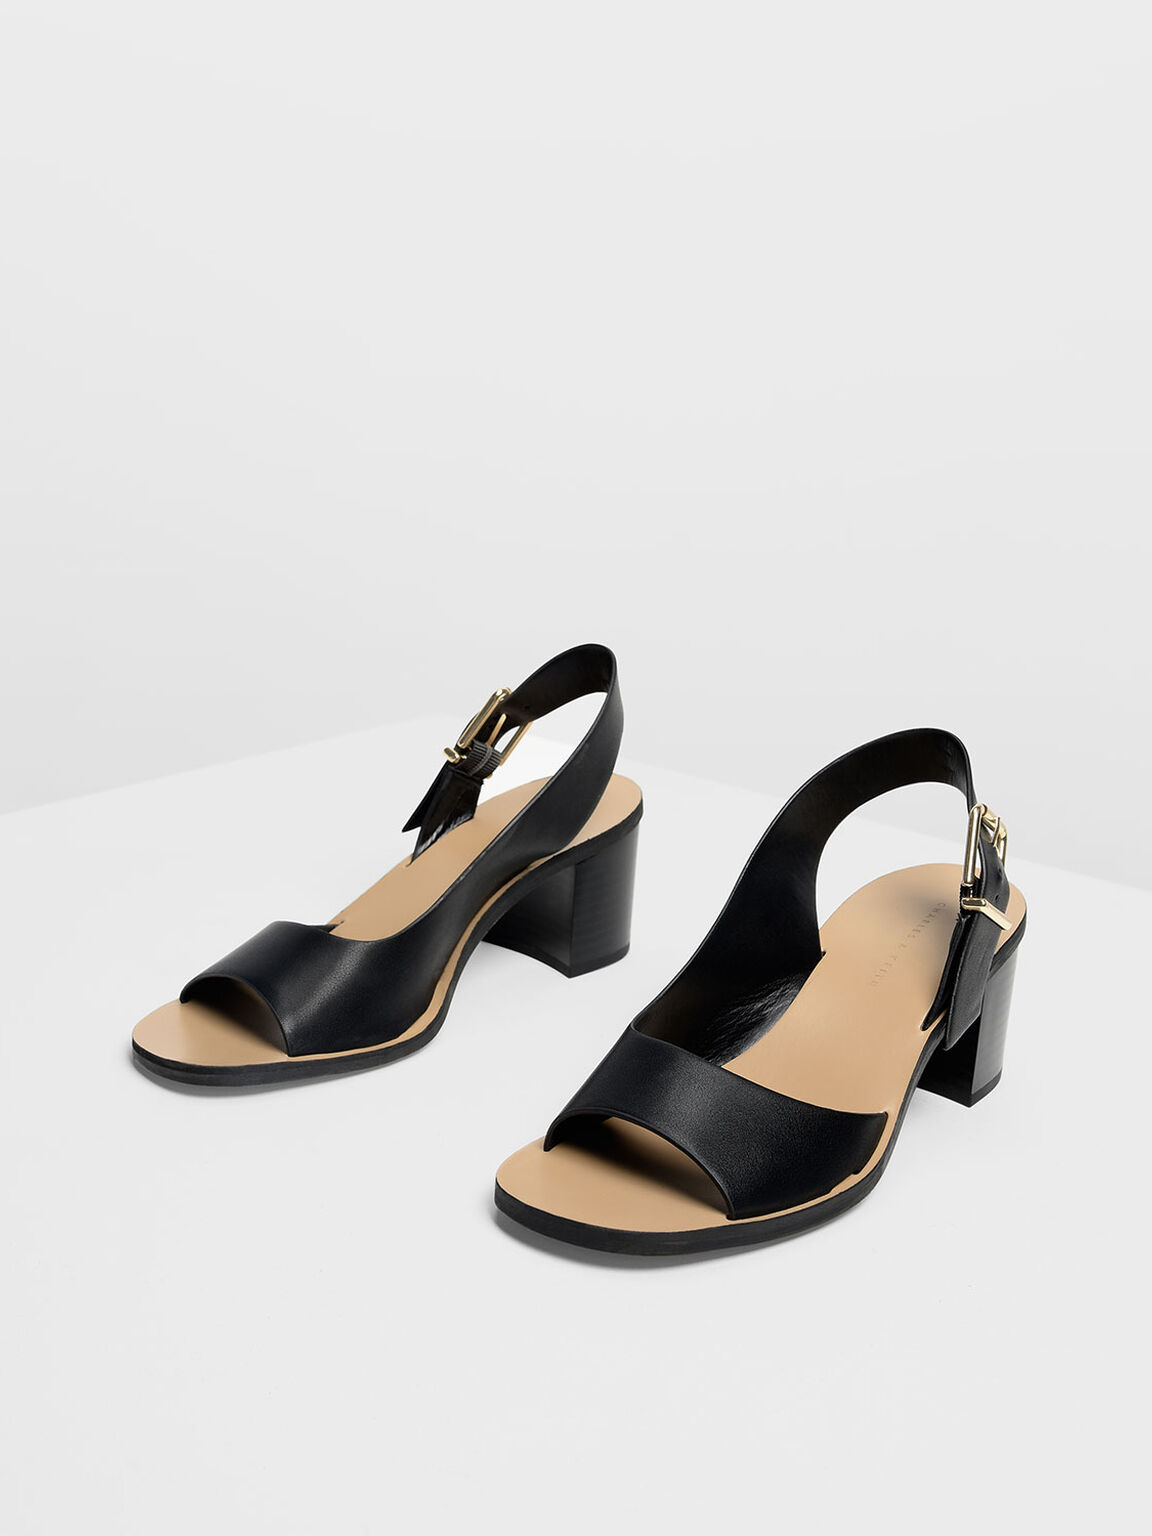 Buckled Slingback Heels, Black, hi-res